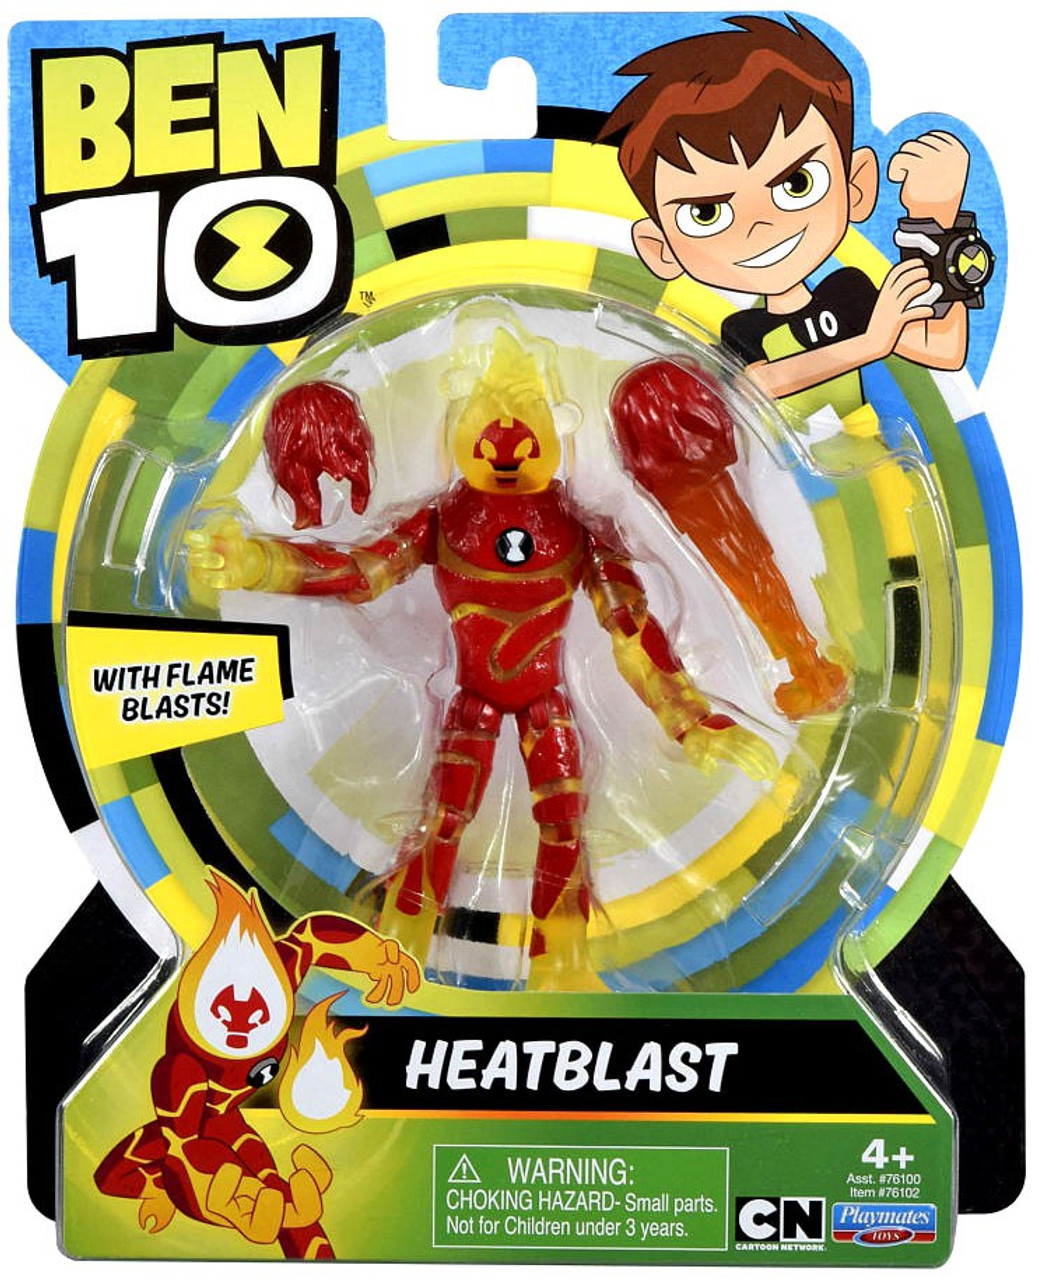 New BEN 10 HEAT BLAST Action Figure With Flame Blasts PLAYMATES TOYS J